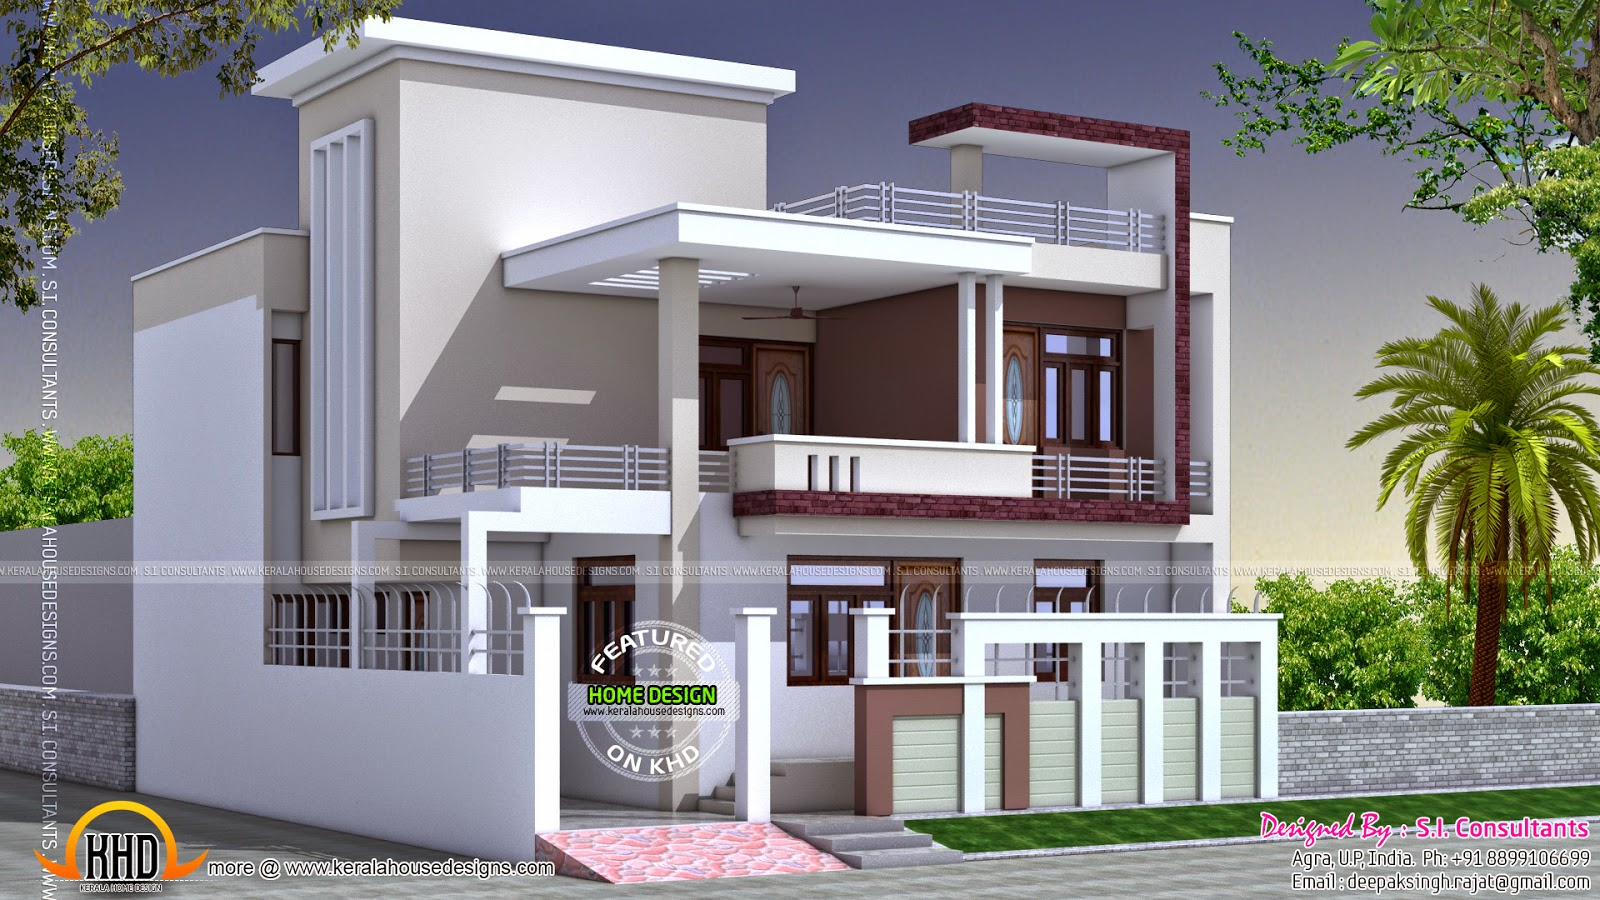 North indian square roof house kerala home design and floor plans - Houses atticsquare meters ...